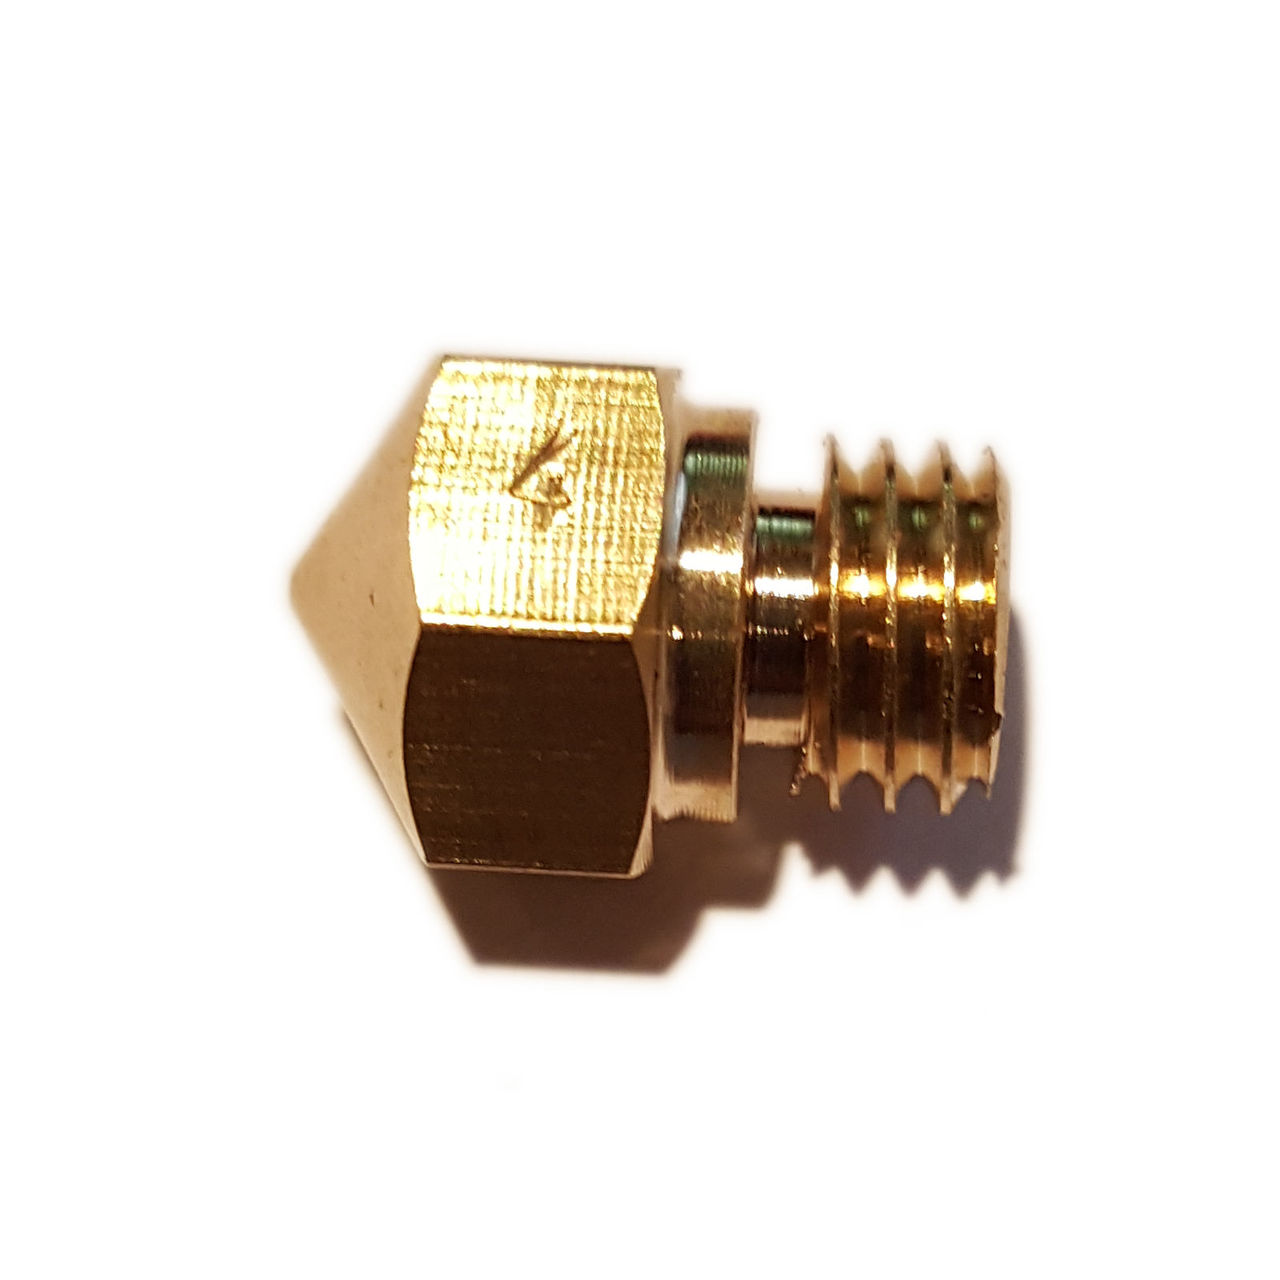 MK10 0.4mm Brass Nozzle - 3D Printing Canada